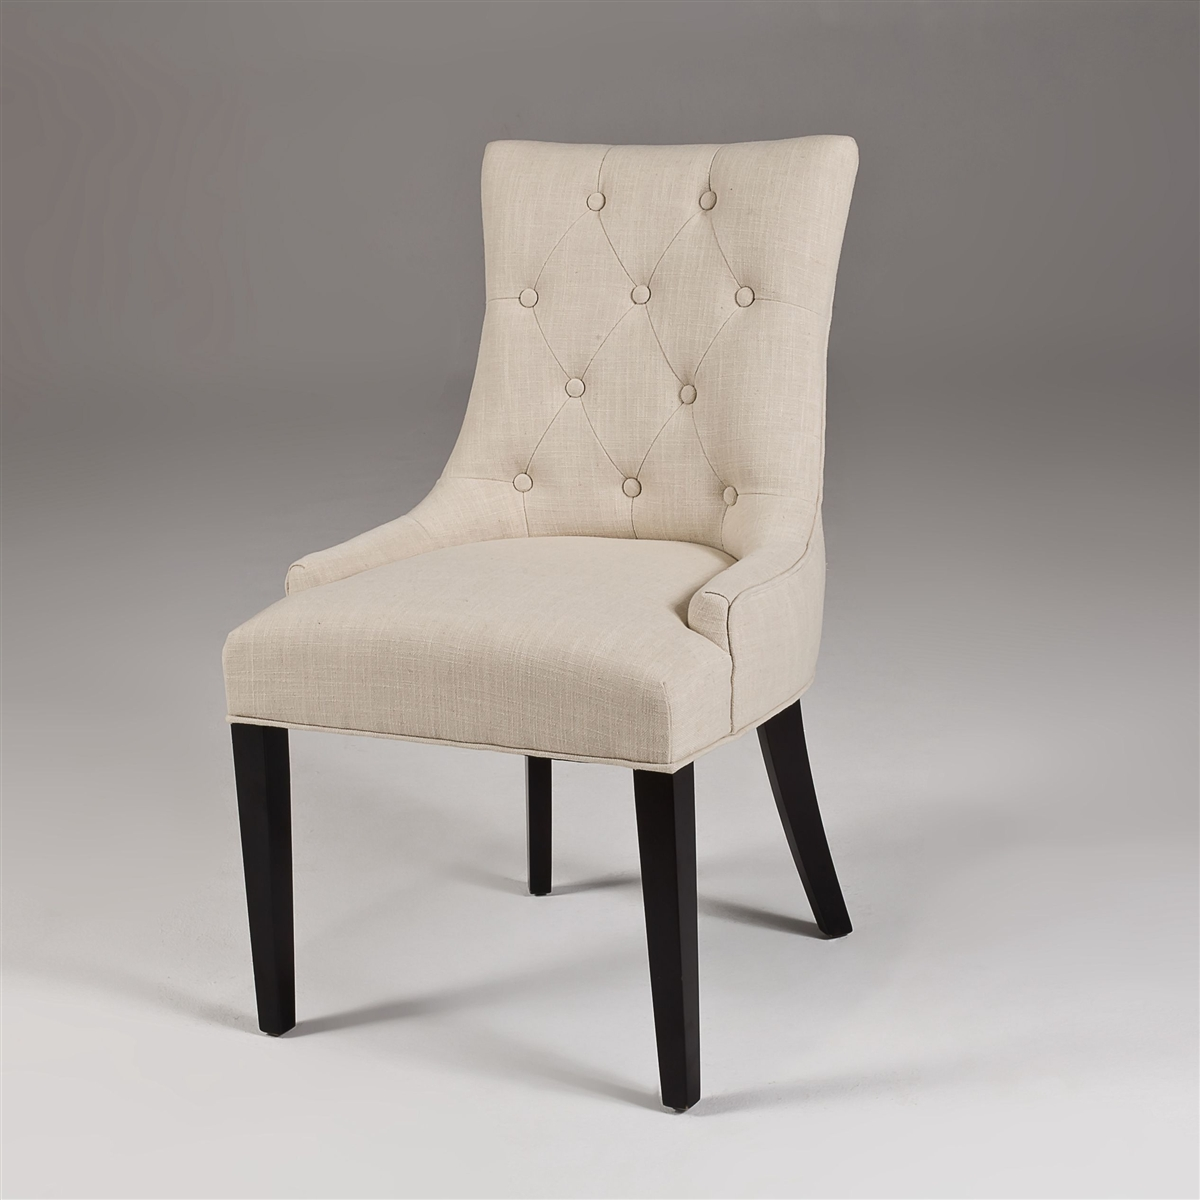 Modern Dining Chairs Beige Linen Dining Chairs Tufted Dining